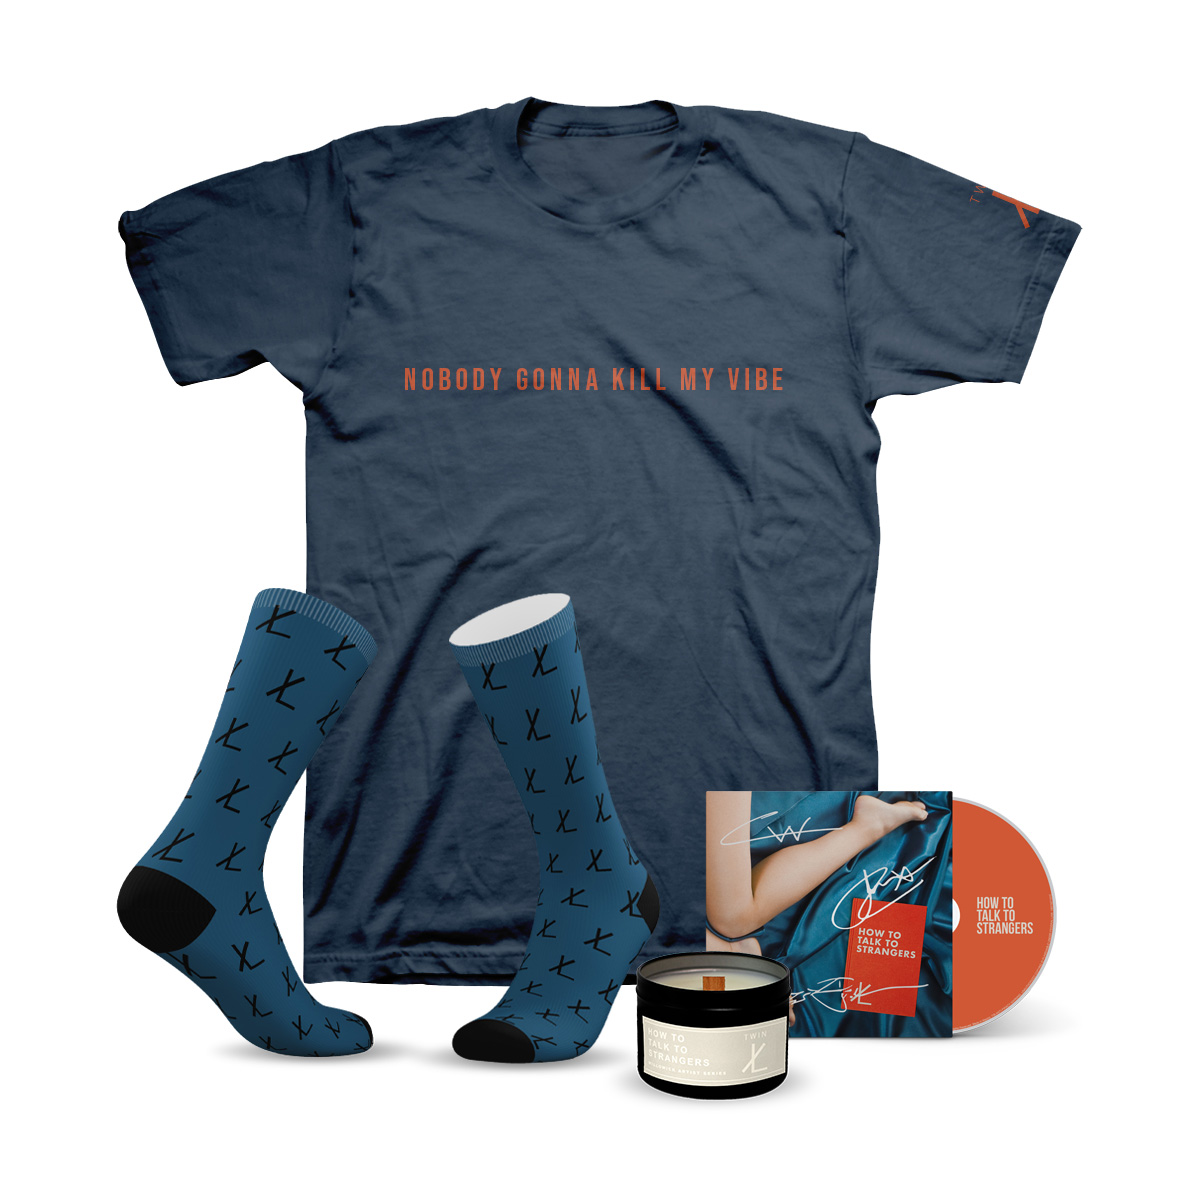 How To Talk To Strangers EP CD + Willowick Candle Company x Twin XL Candle + Tribe Socks x Twin XL Socks + Nobody Gonna Kill My Vibe Navy Blue T-Shirt Bundle